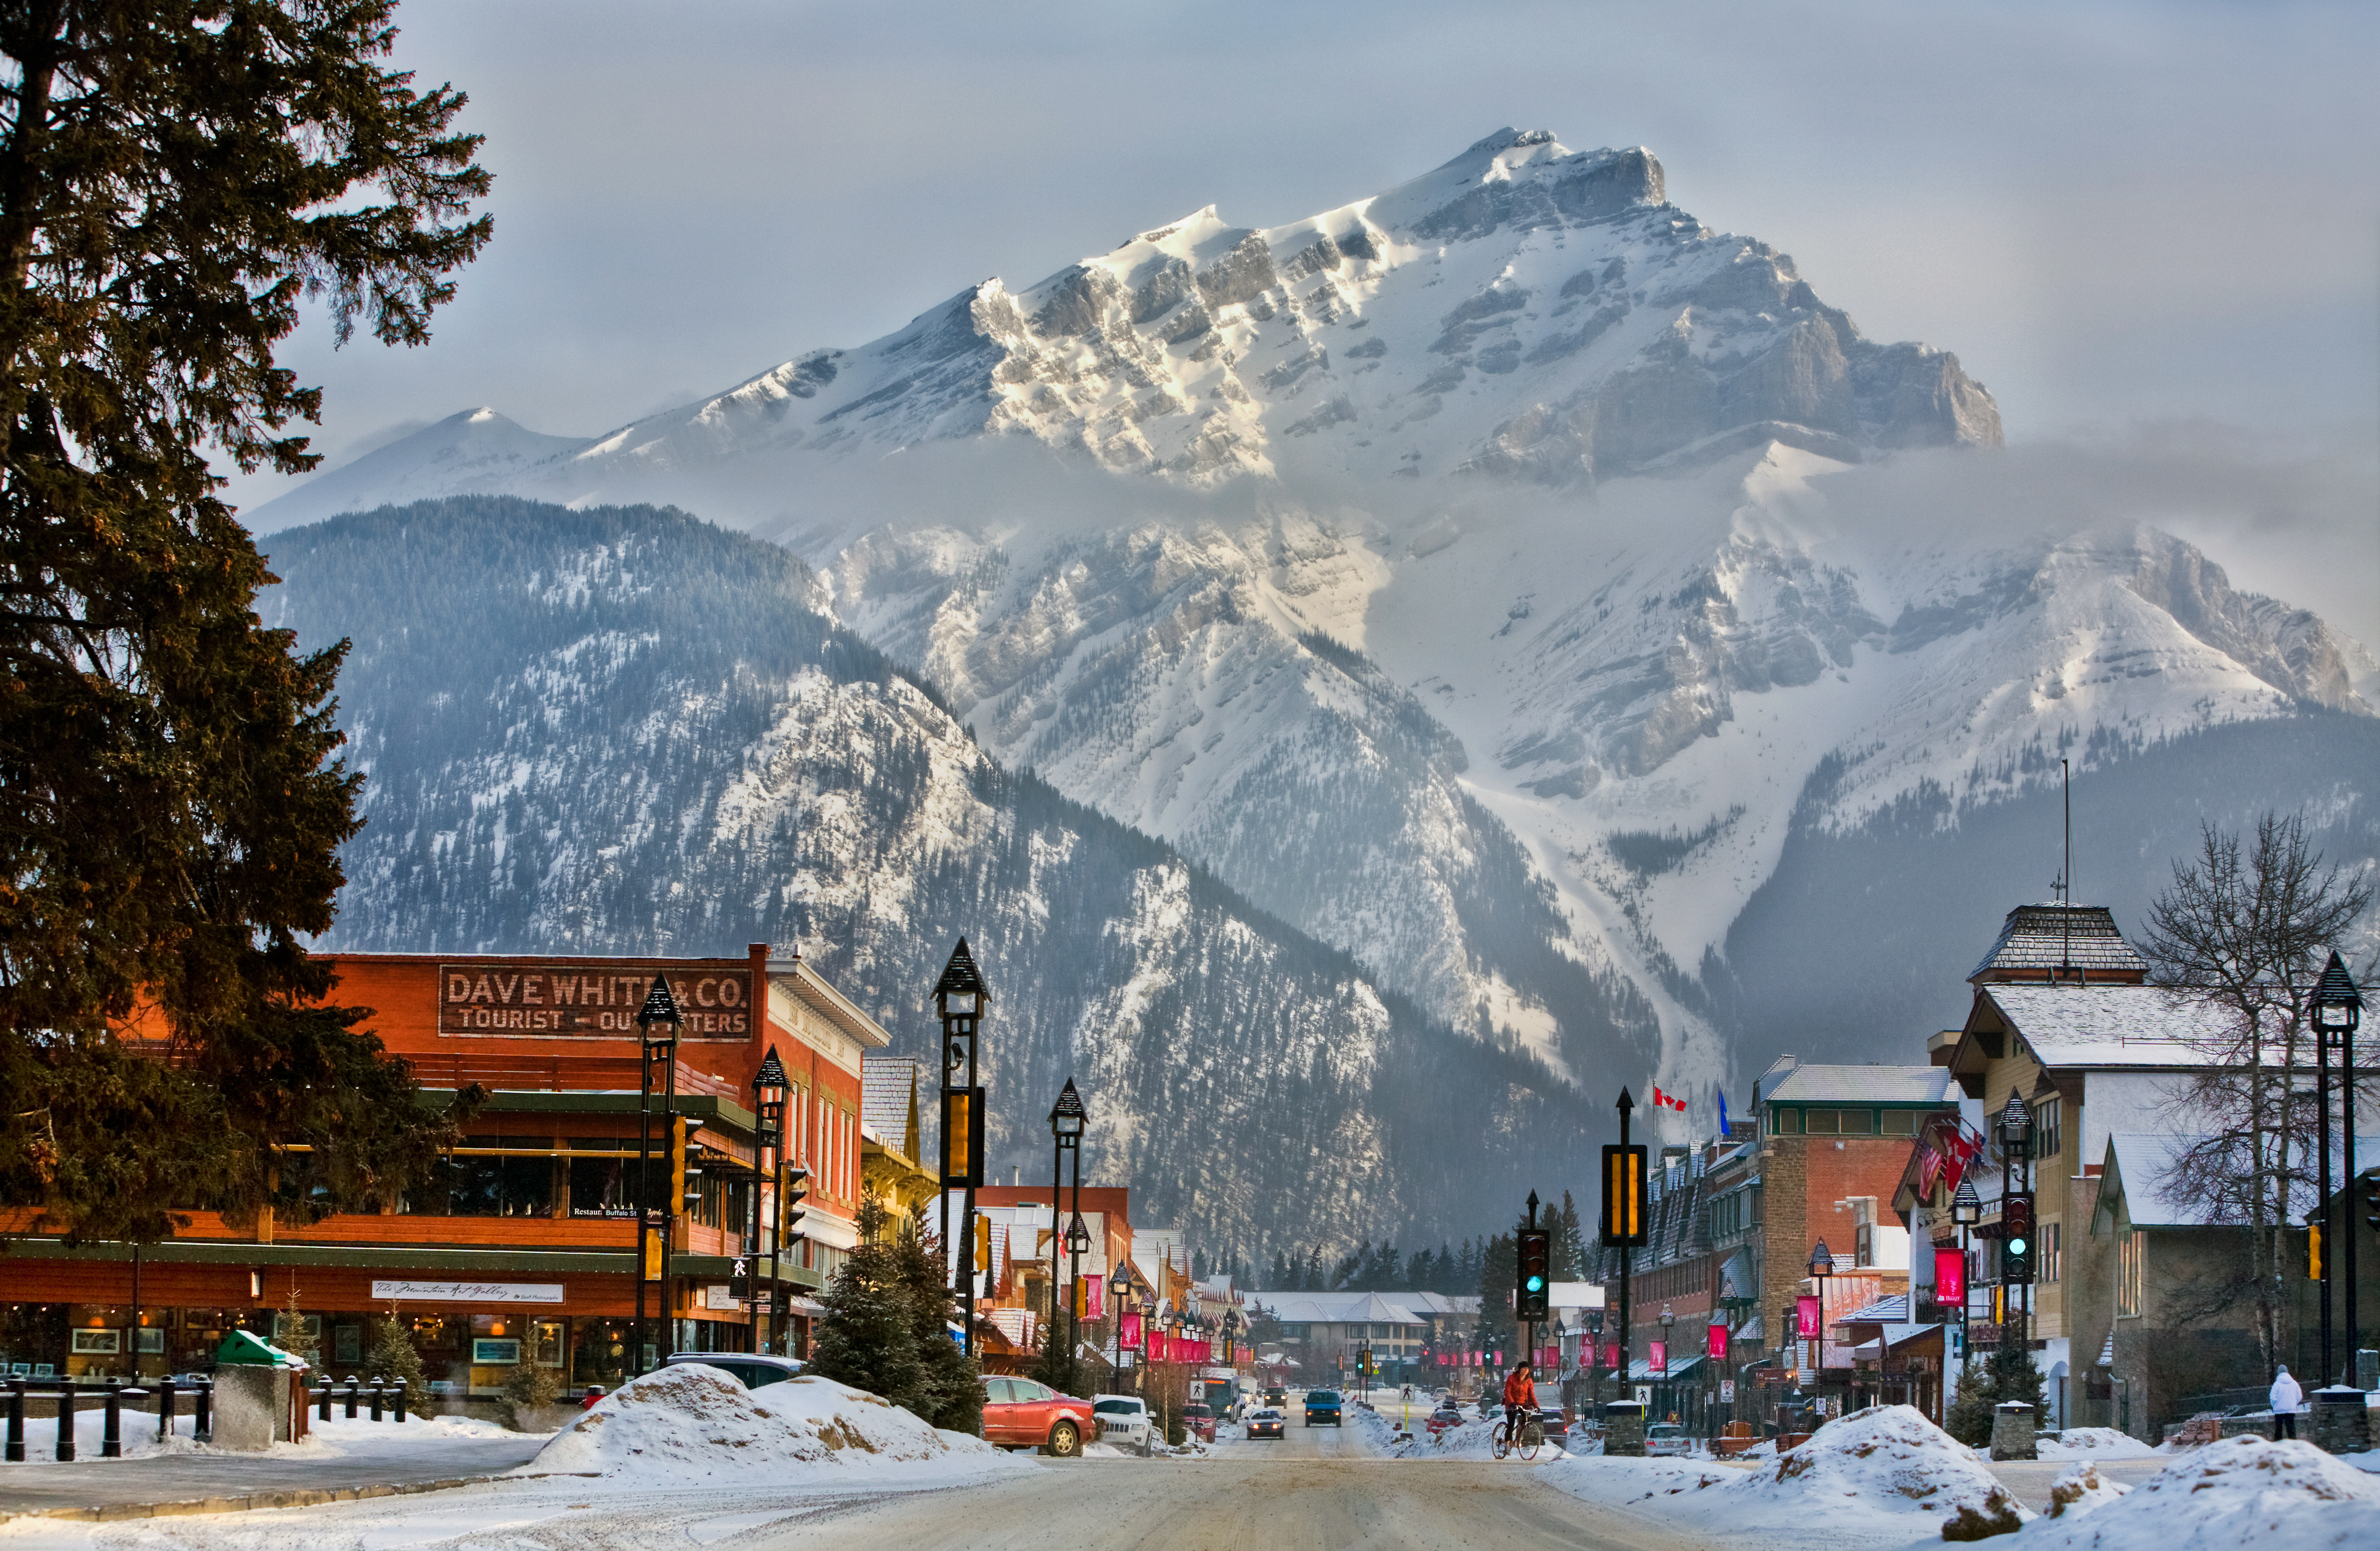 1-Day Winter Banff, Bow Falls Tour from Calgary